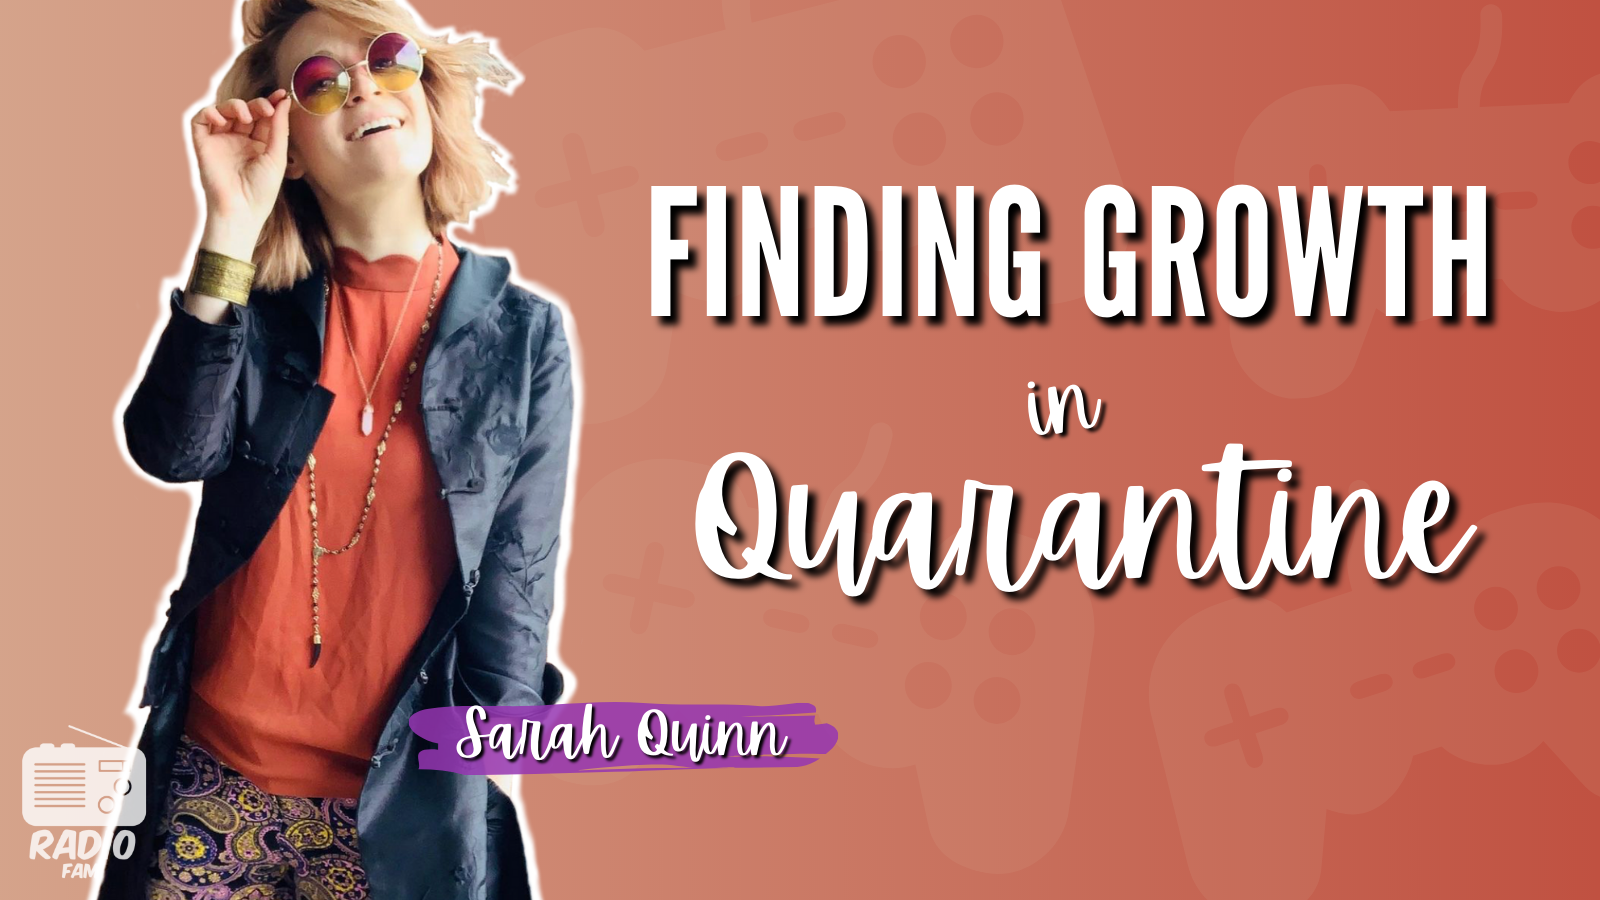 Finding Growth in Quarantine